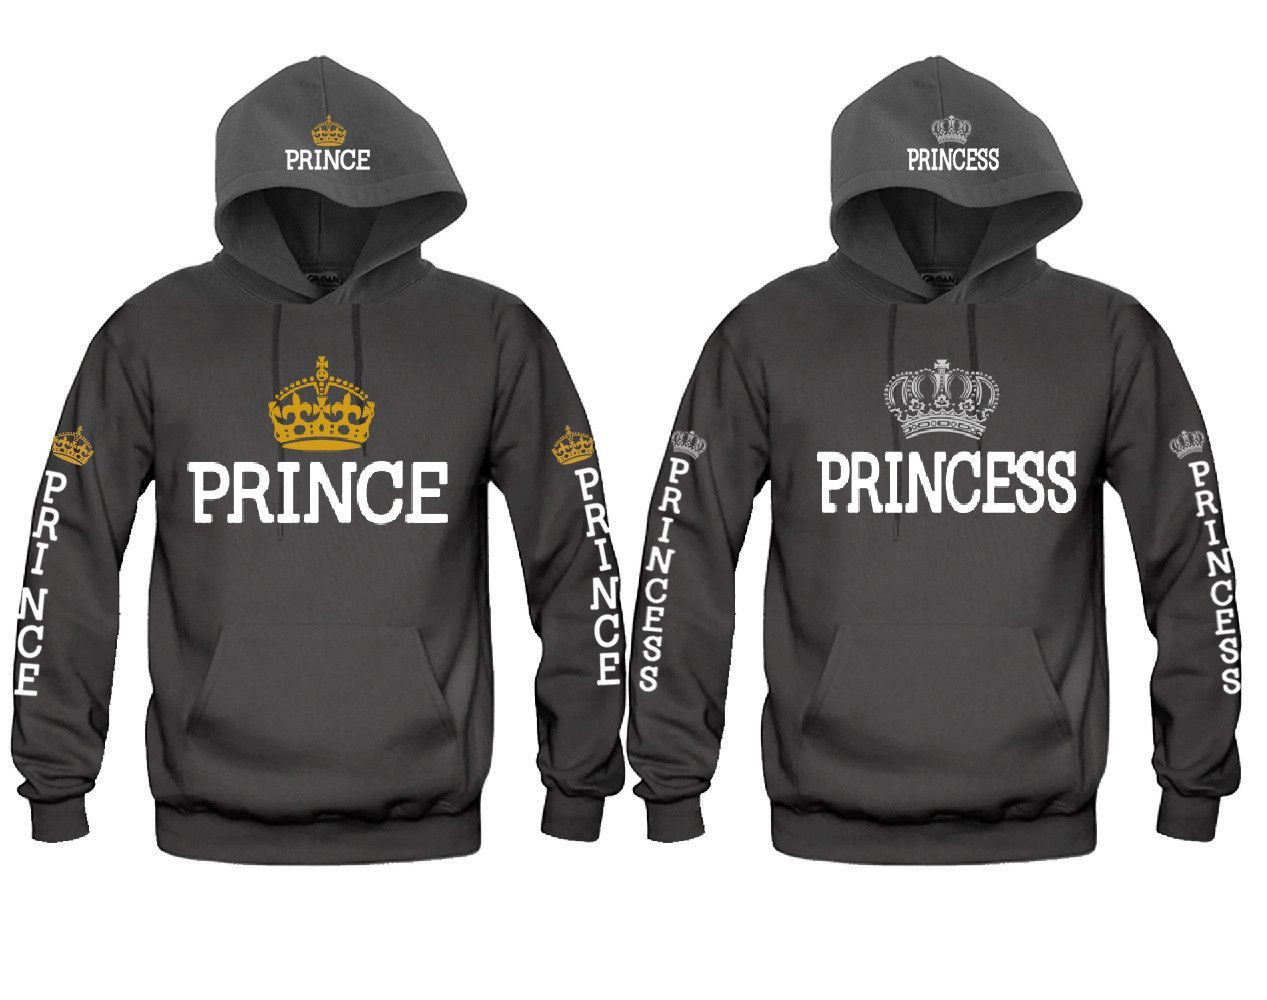 Prince and Princess Fully Loaded Unisex Couple Matching Hoodies ... bdc1d682fa